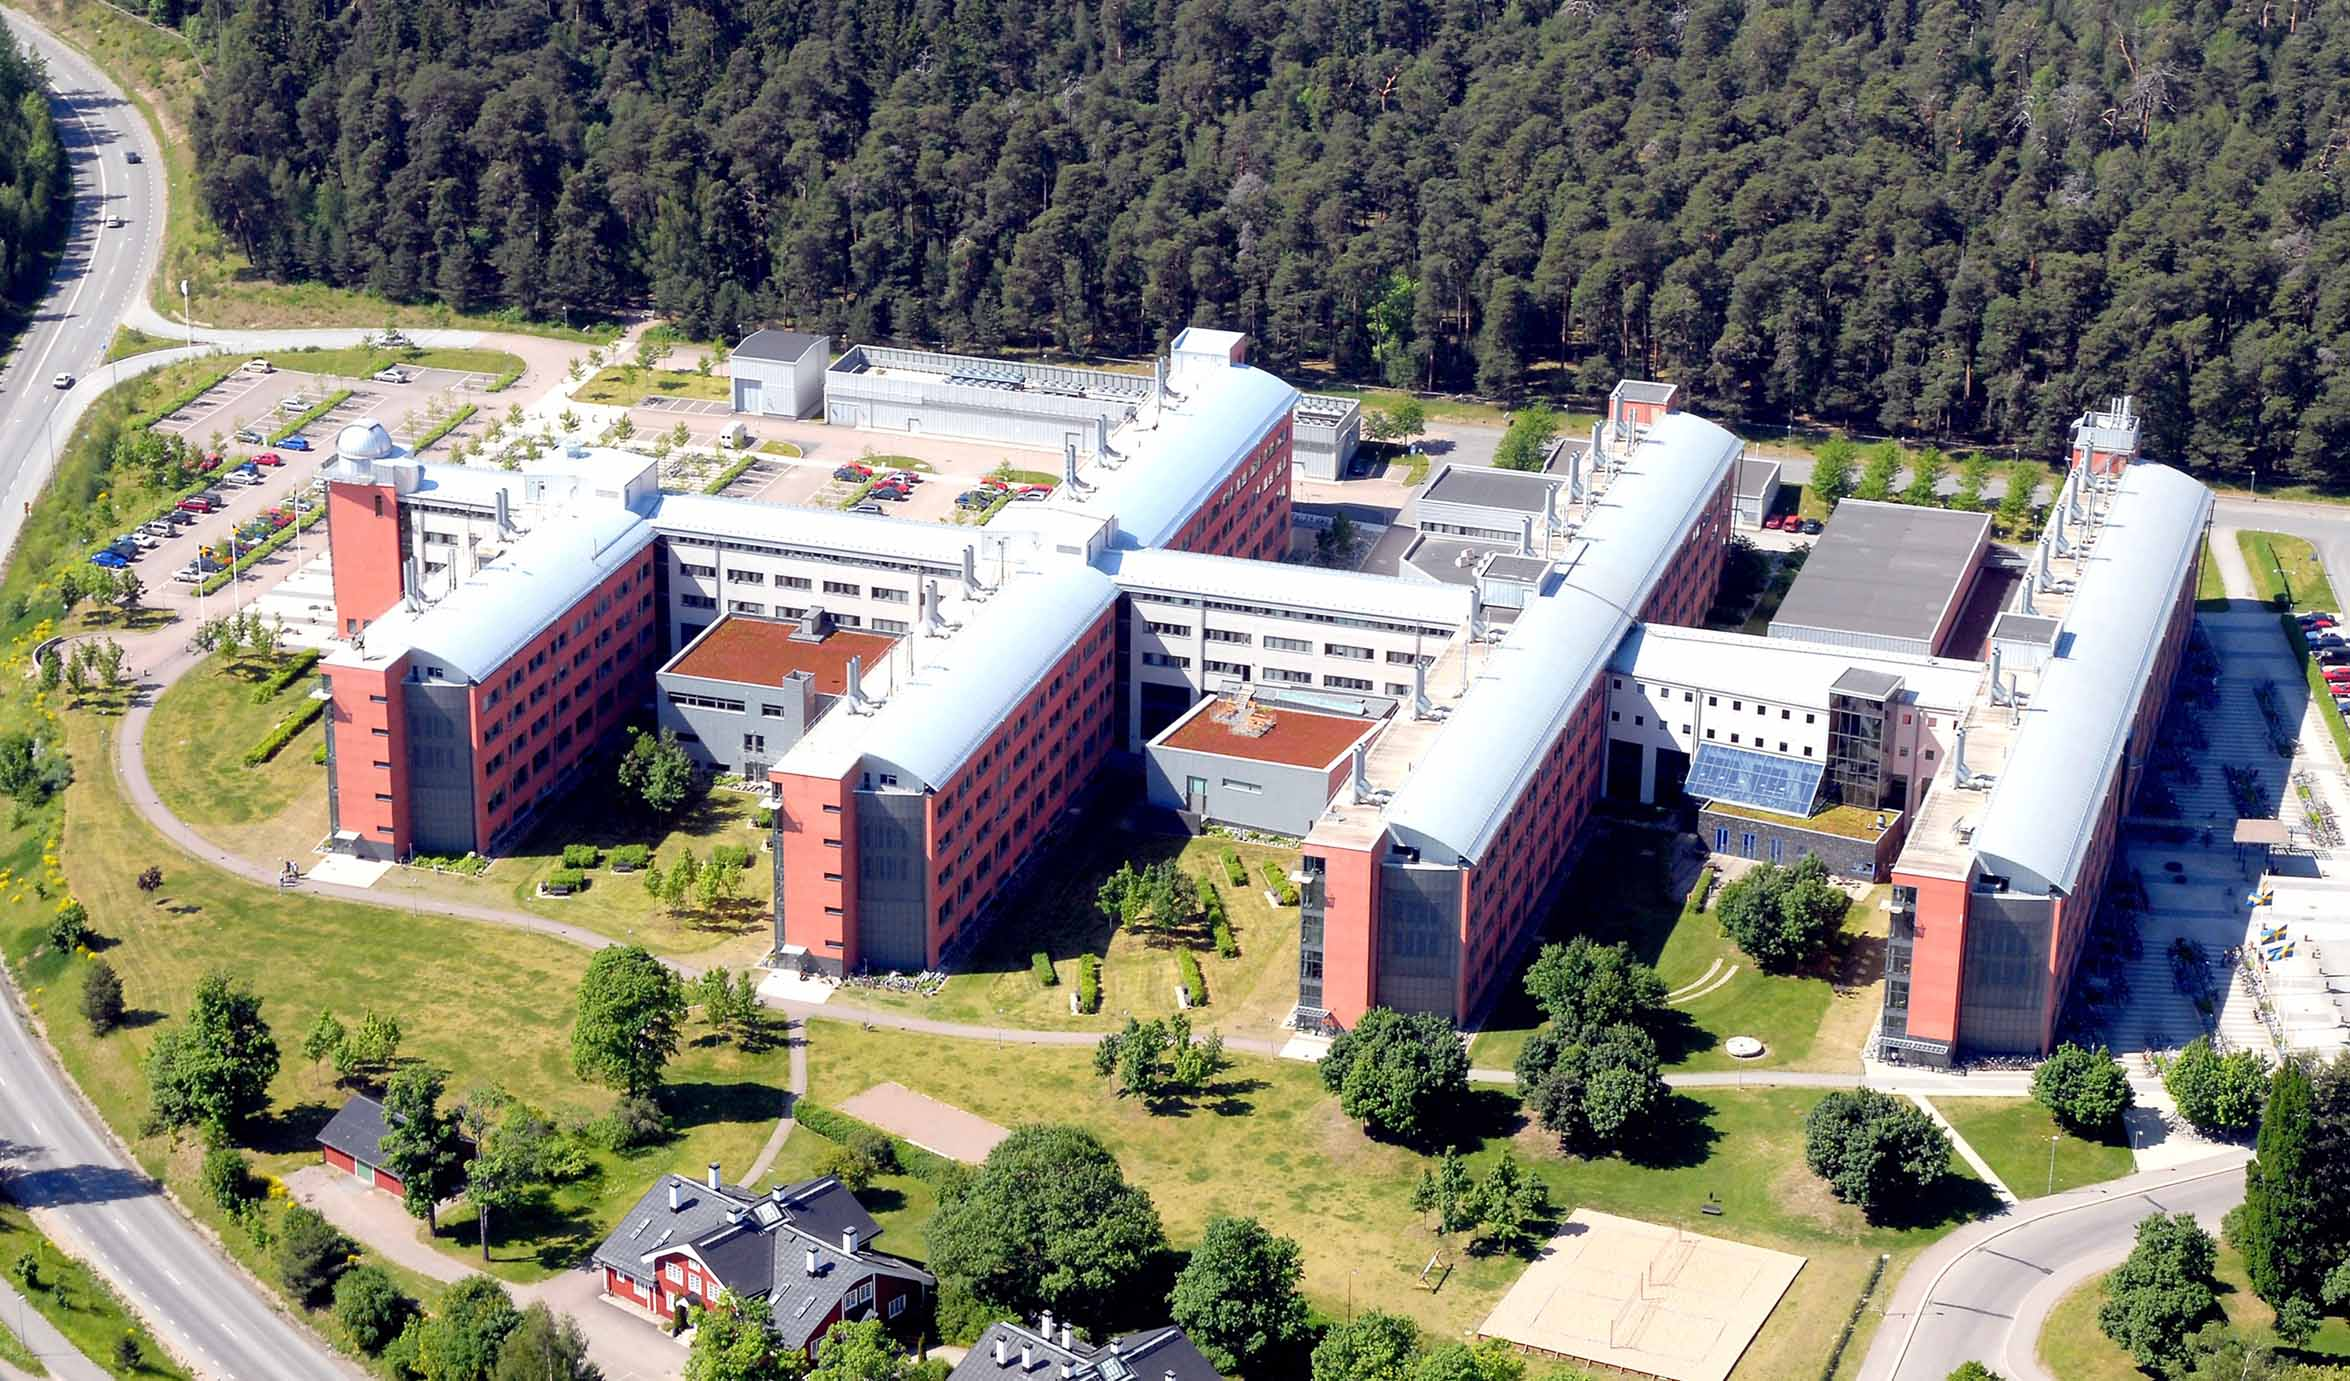 Photo of Campus Ångström taken by Teddy Thörnlund